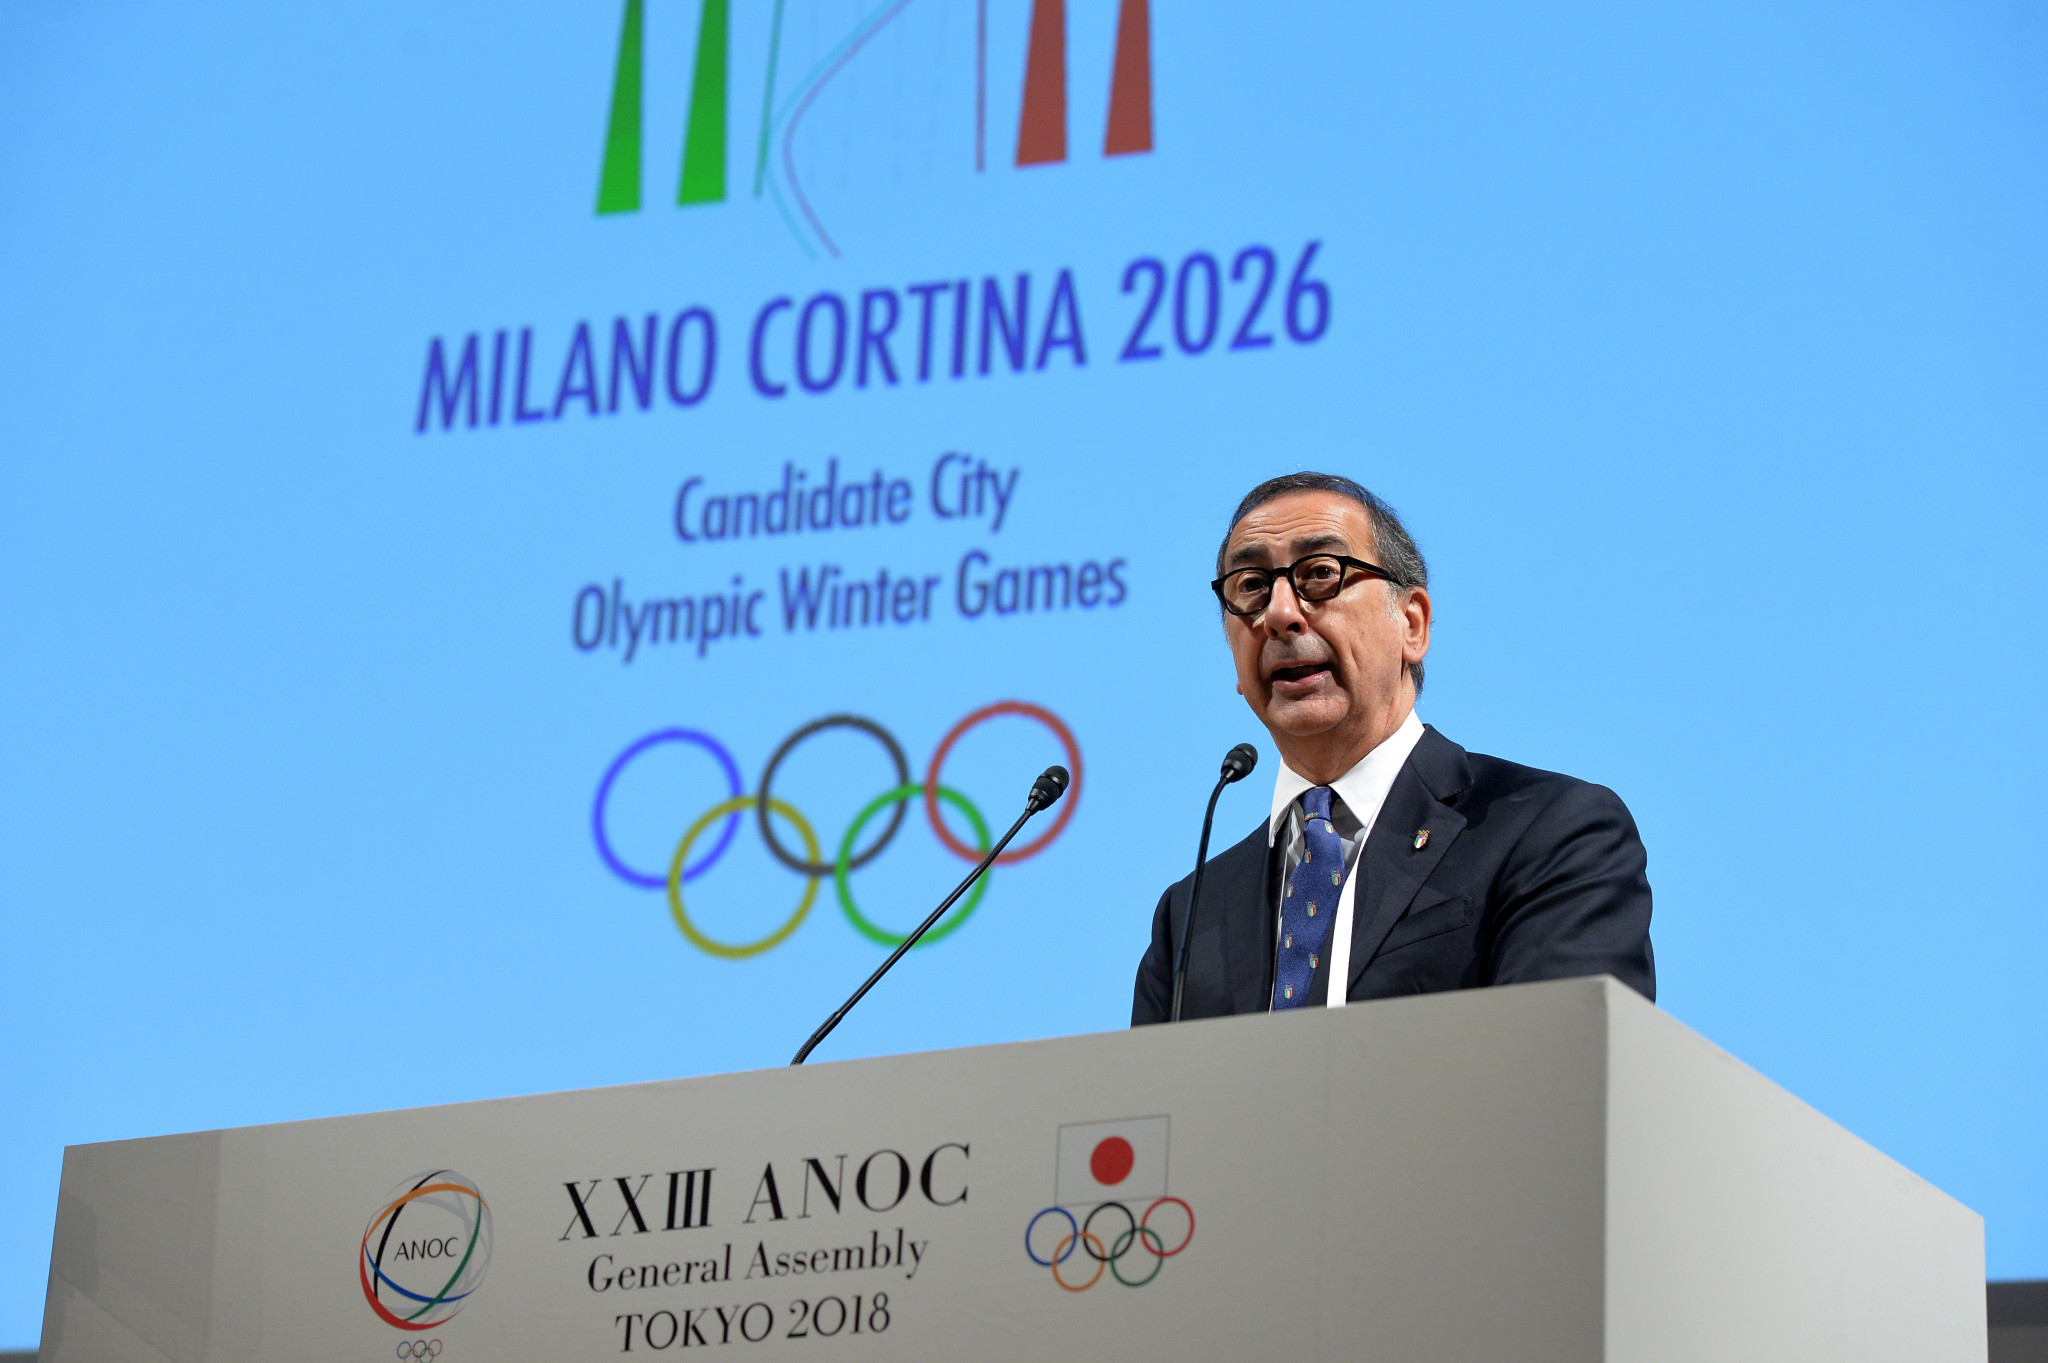 Milan-Cortina d'Ampezzo 2026 claim to have received Government support for their bid ©Getty Images